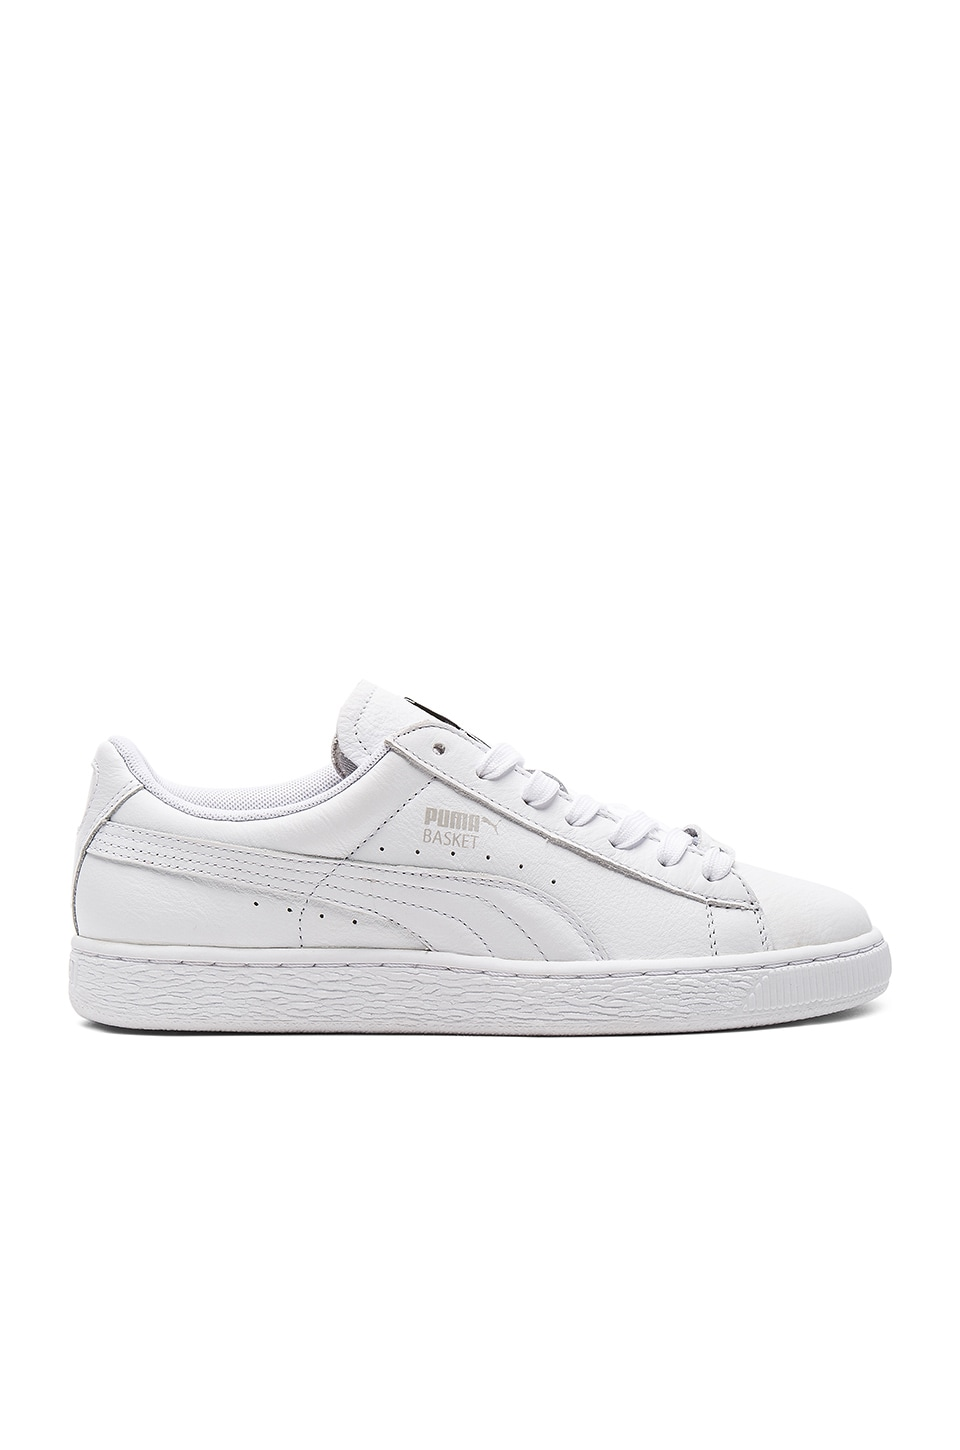 x Trapstar Basket White by Puma Select